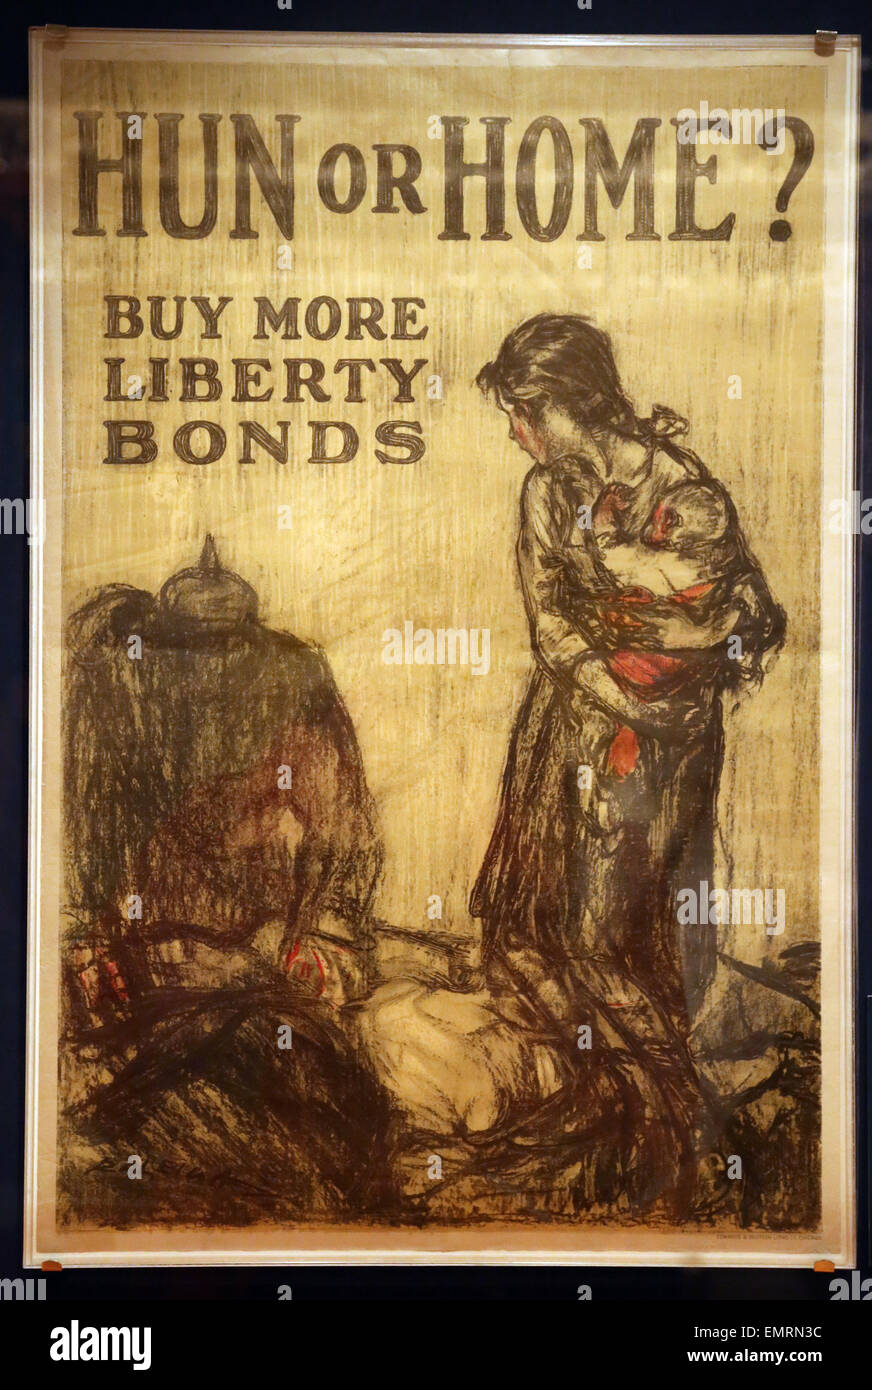 Hun or Home?. By More Liberty Bonds. Henry Raleigh.Edwards& Deutsch Litho. C., 1918. Posters issued by the U.S. - Stock Image